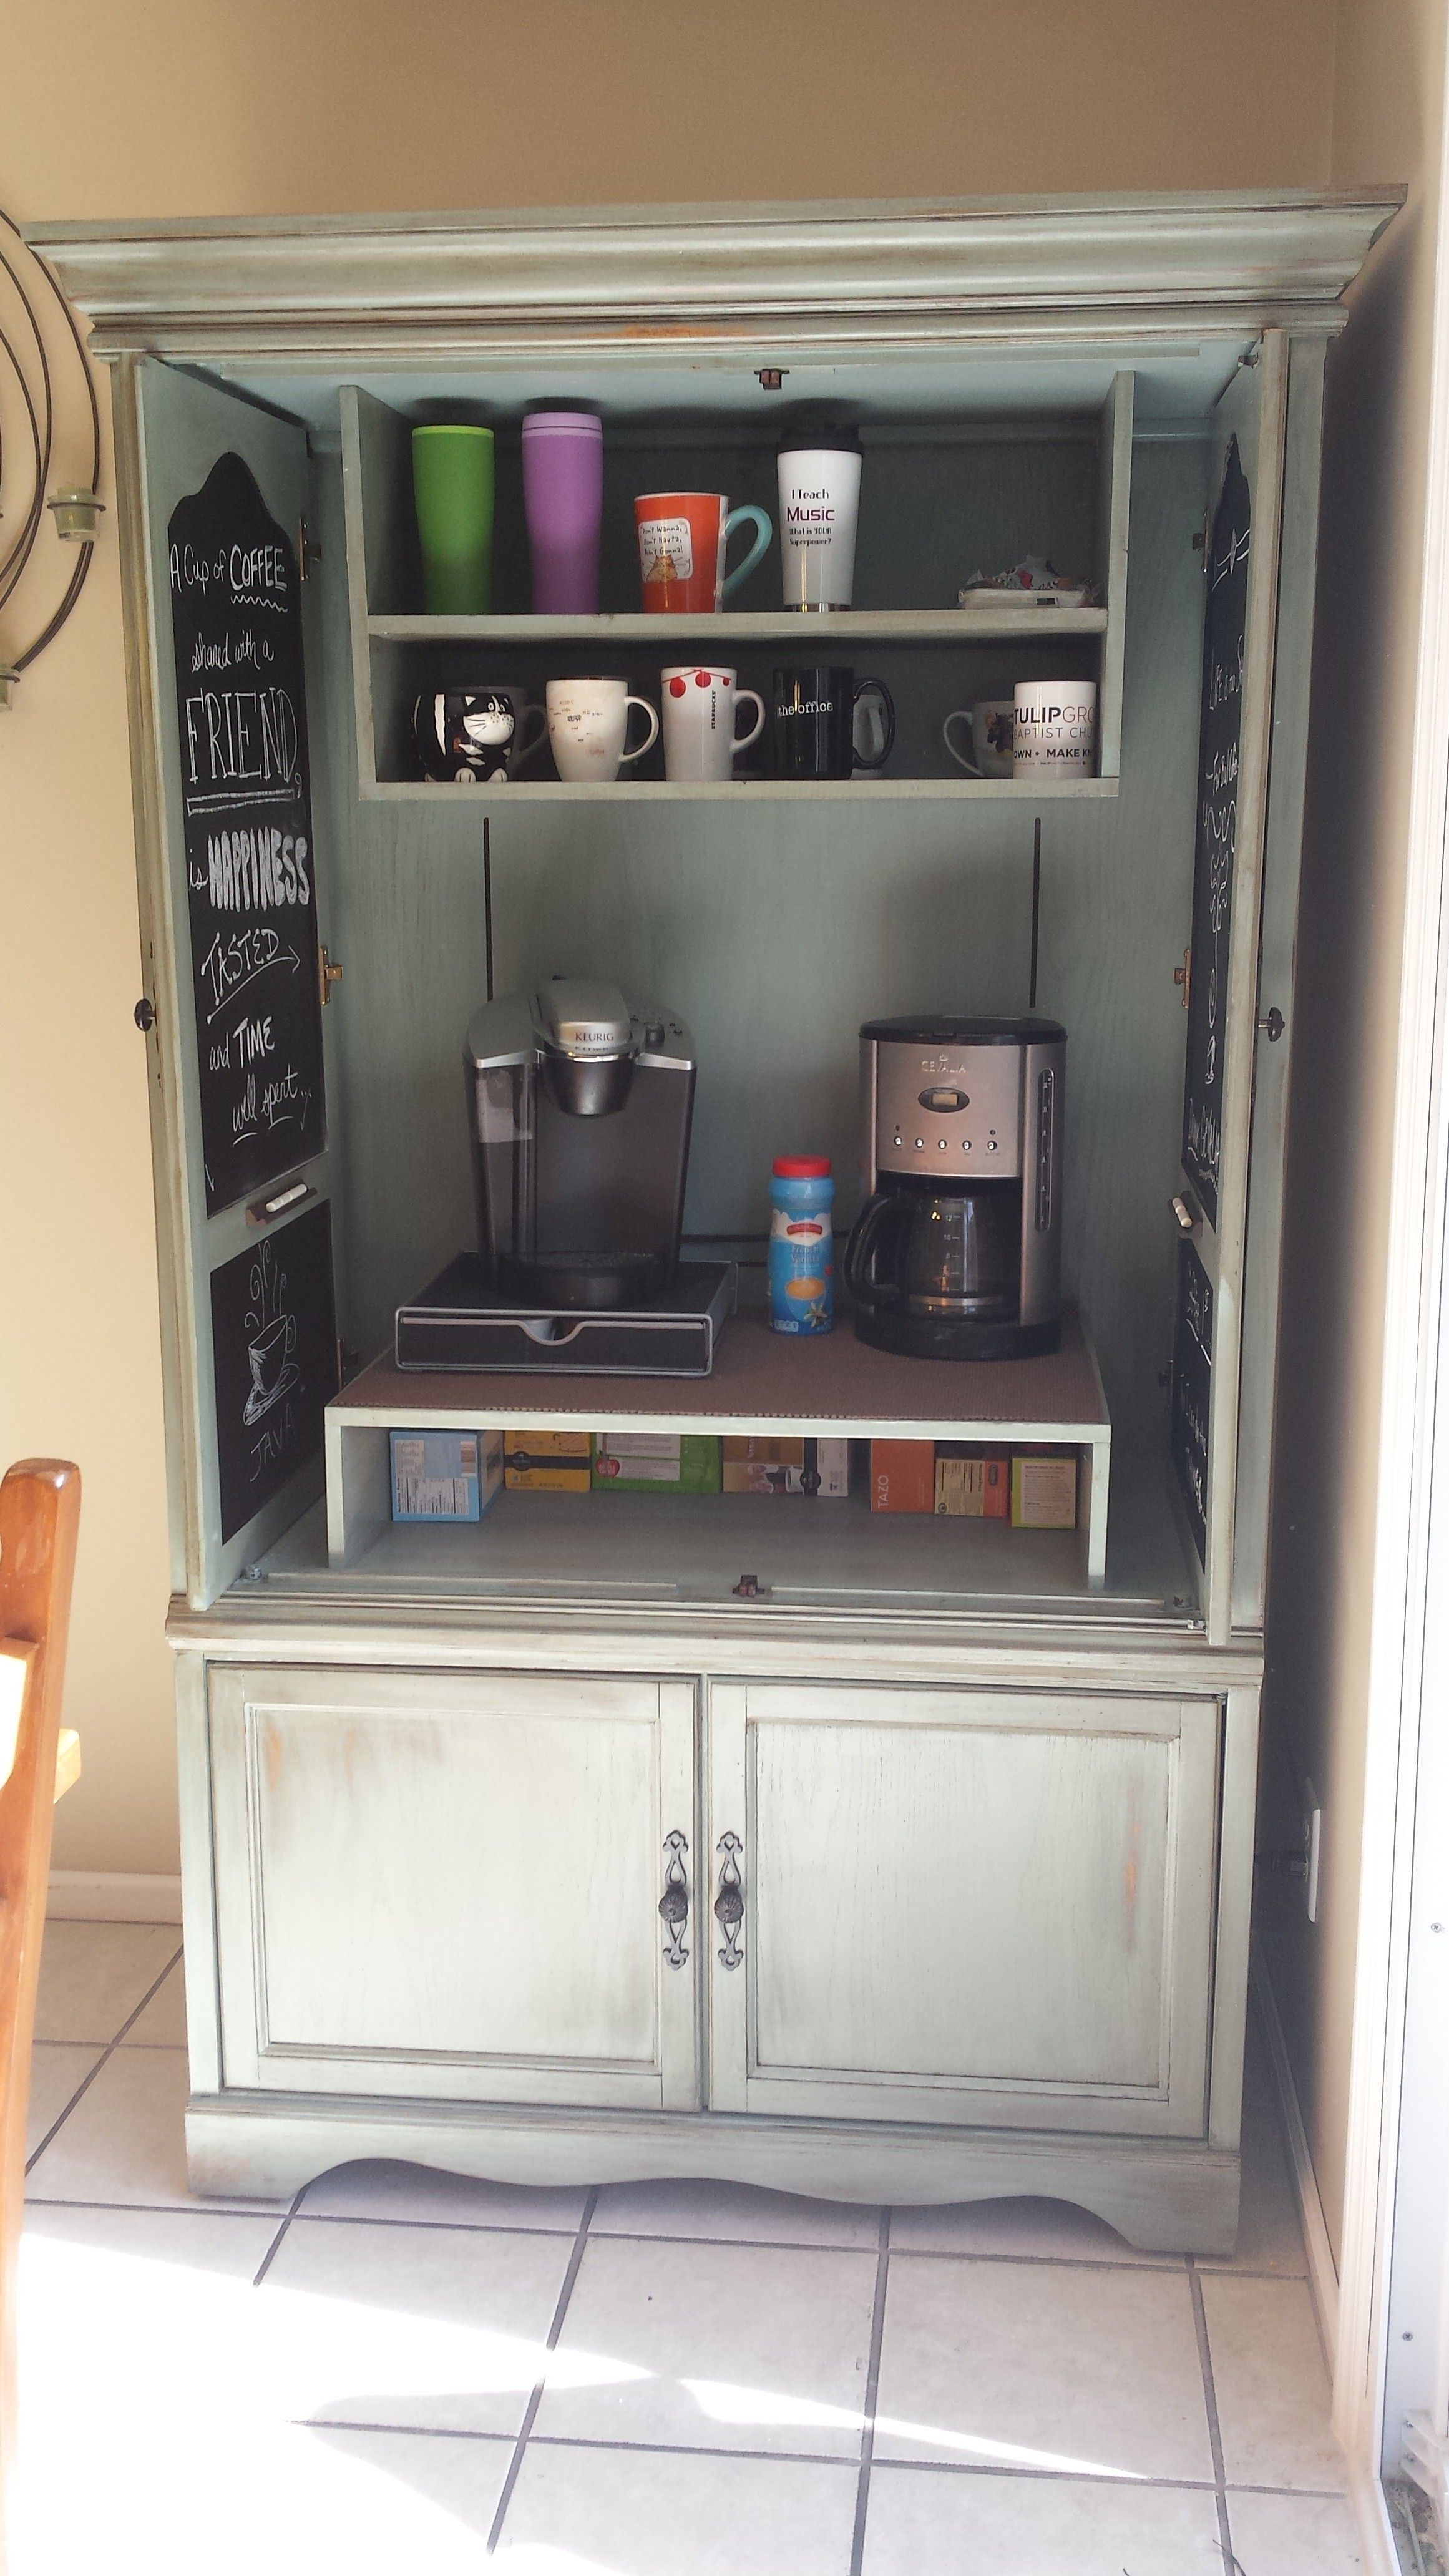 Inside Pic Of My Oak Armoire To Coffee Bar Hubby Made The Upper Shelves To Match The Bottom Doors Are Chalkboard Inside With Quotes About Coffee